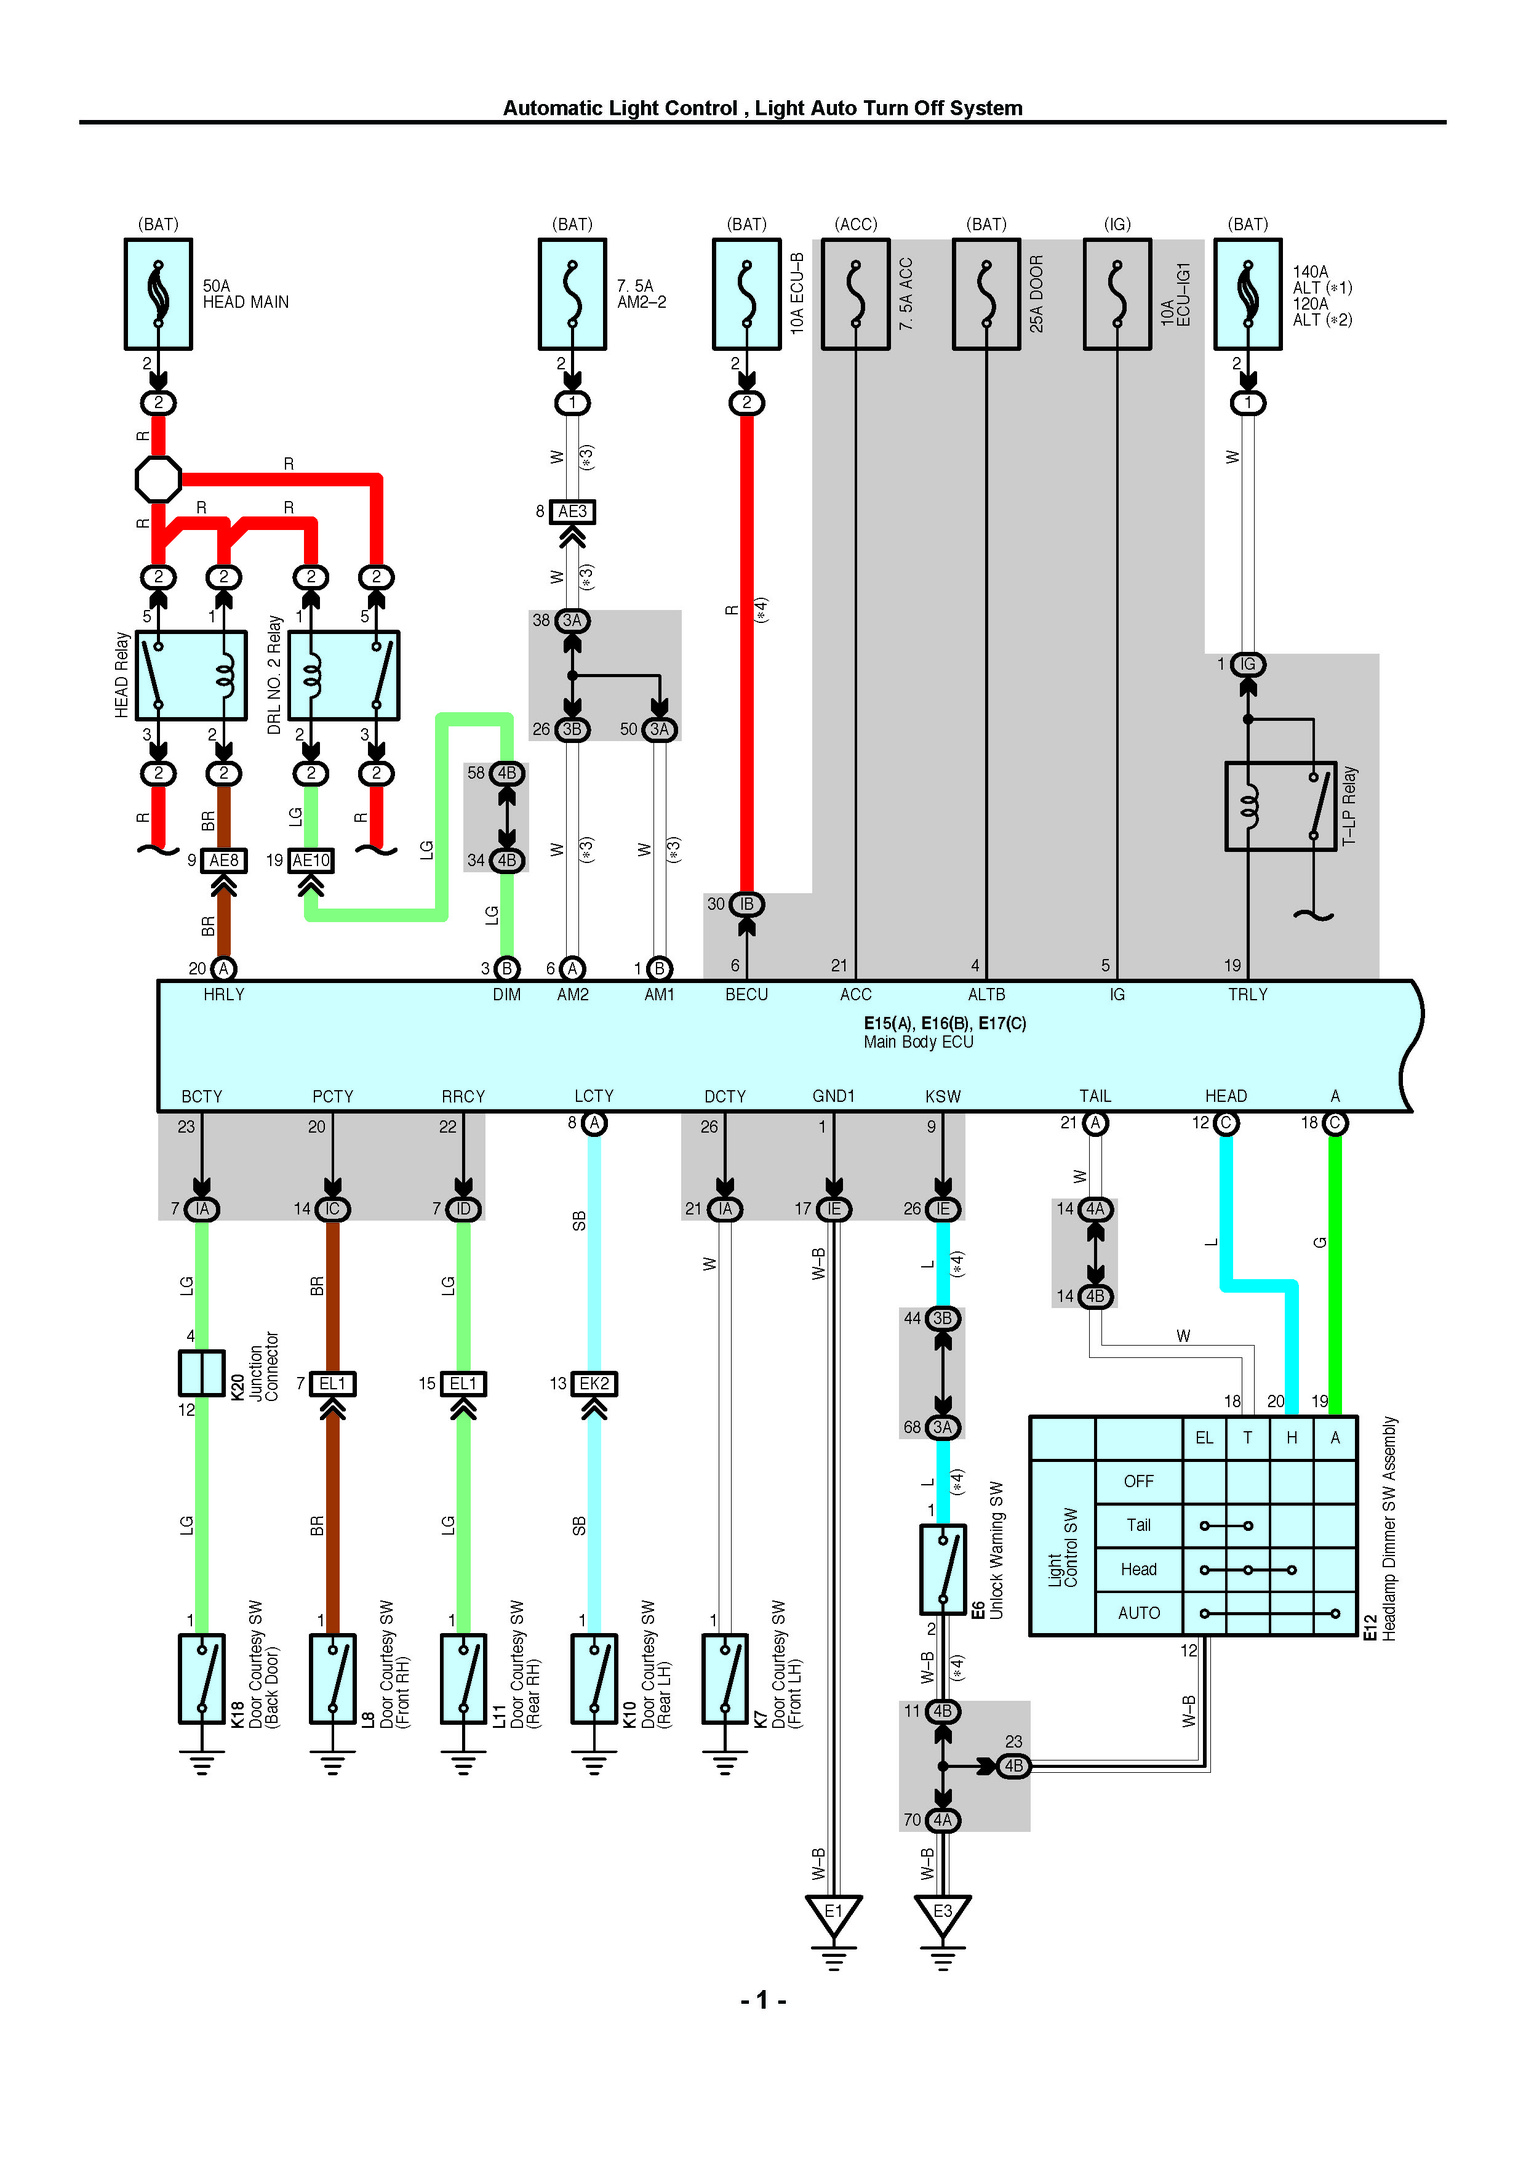 hight resolution of the separate wiring manual for each model contains circuit diagrams of each electrical system wiring route diagrams and diagrams showing the location of